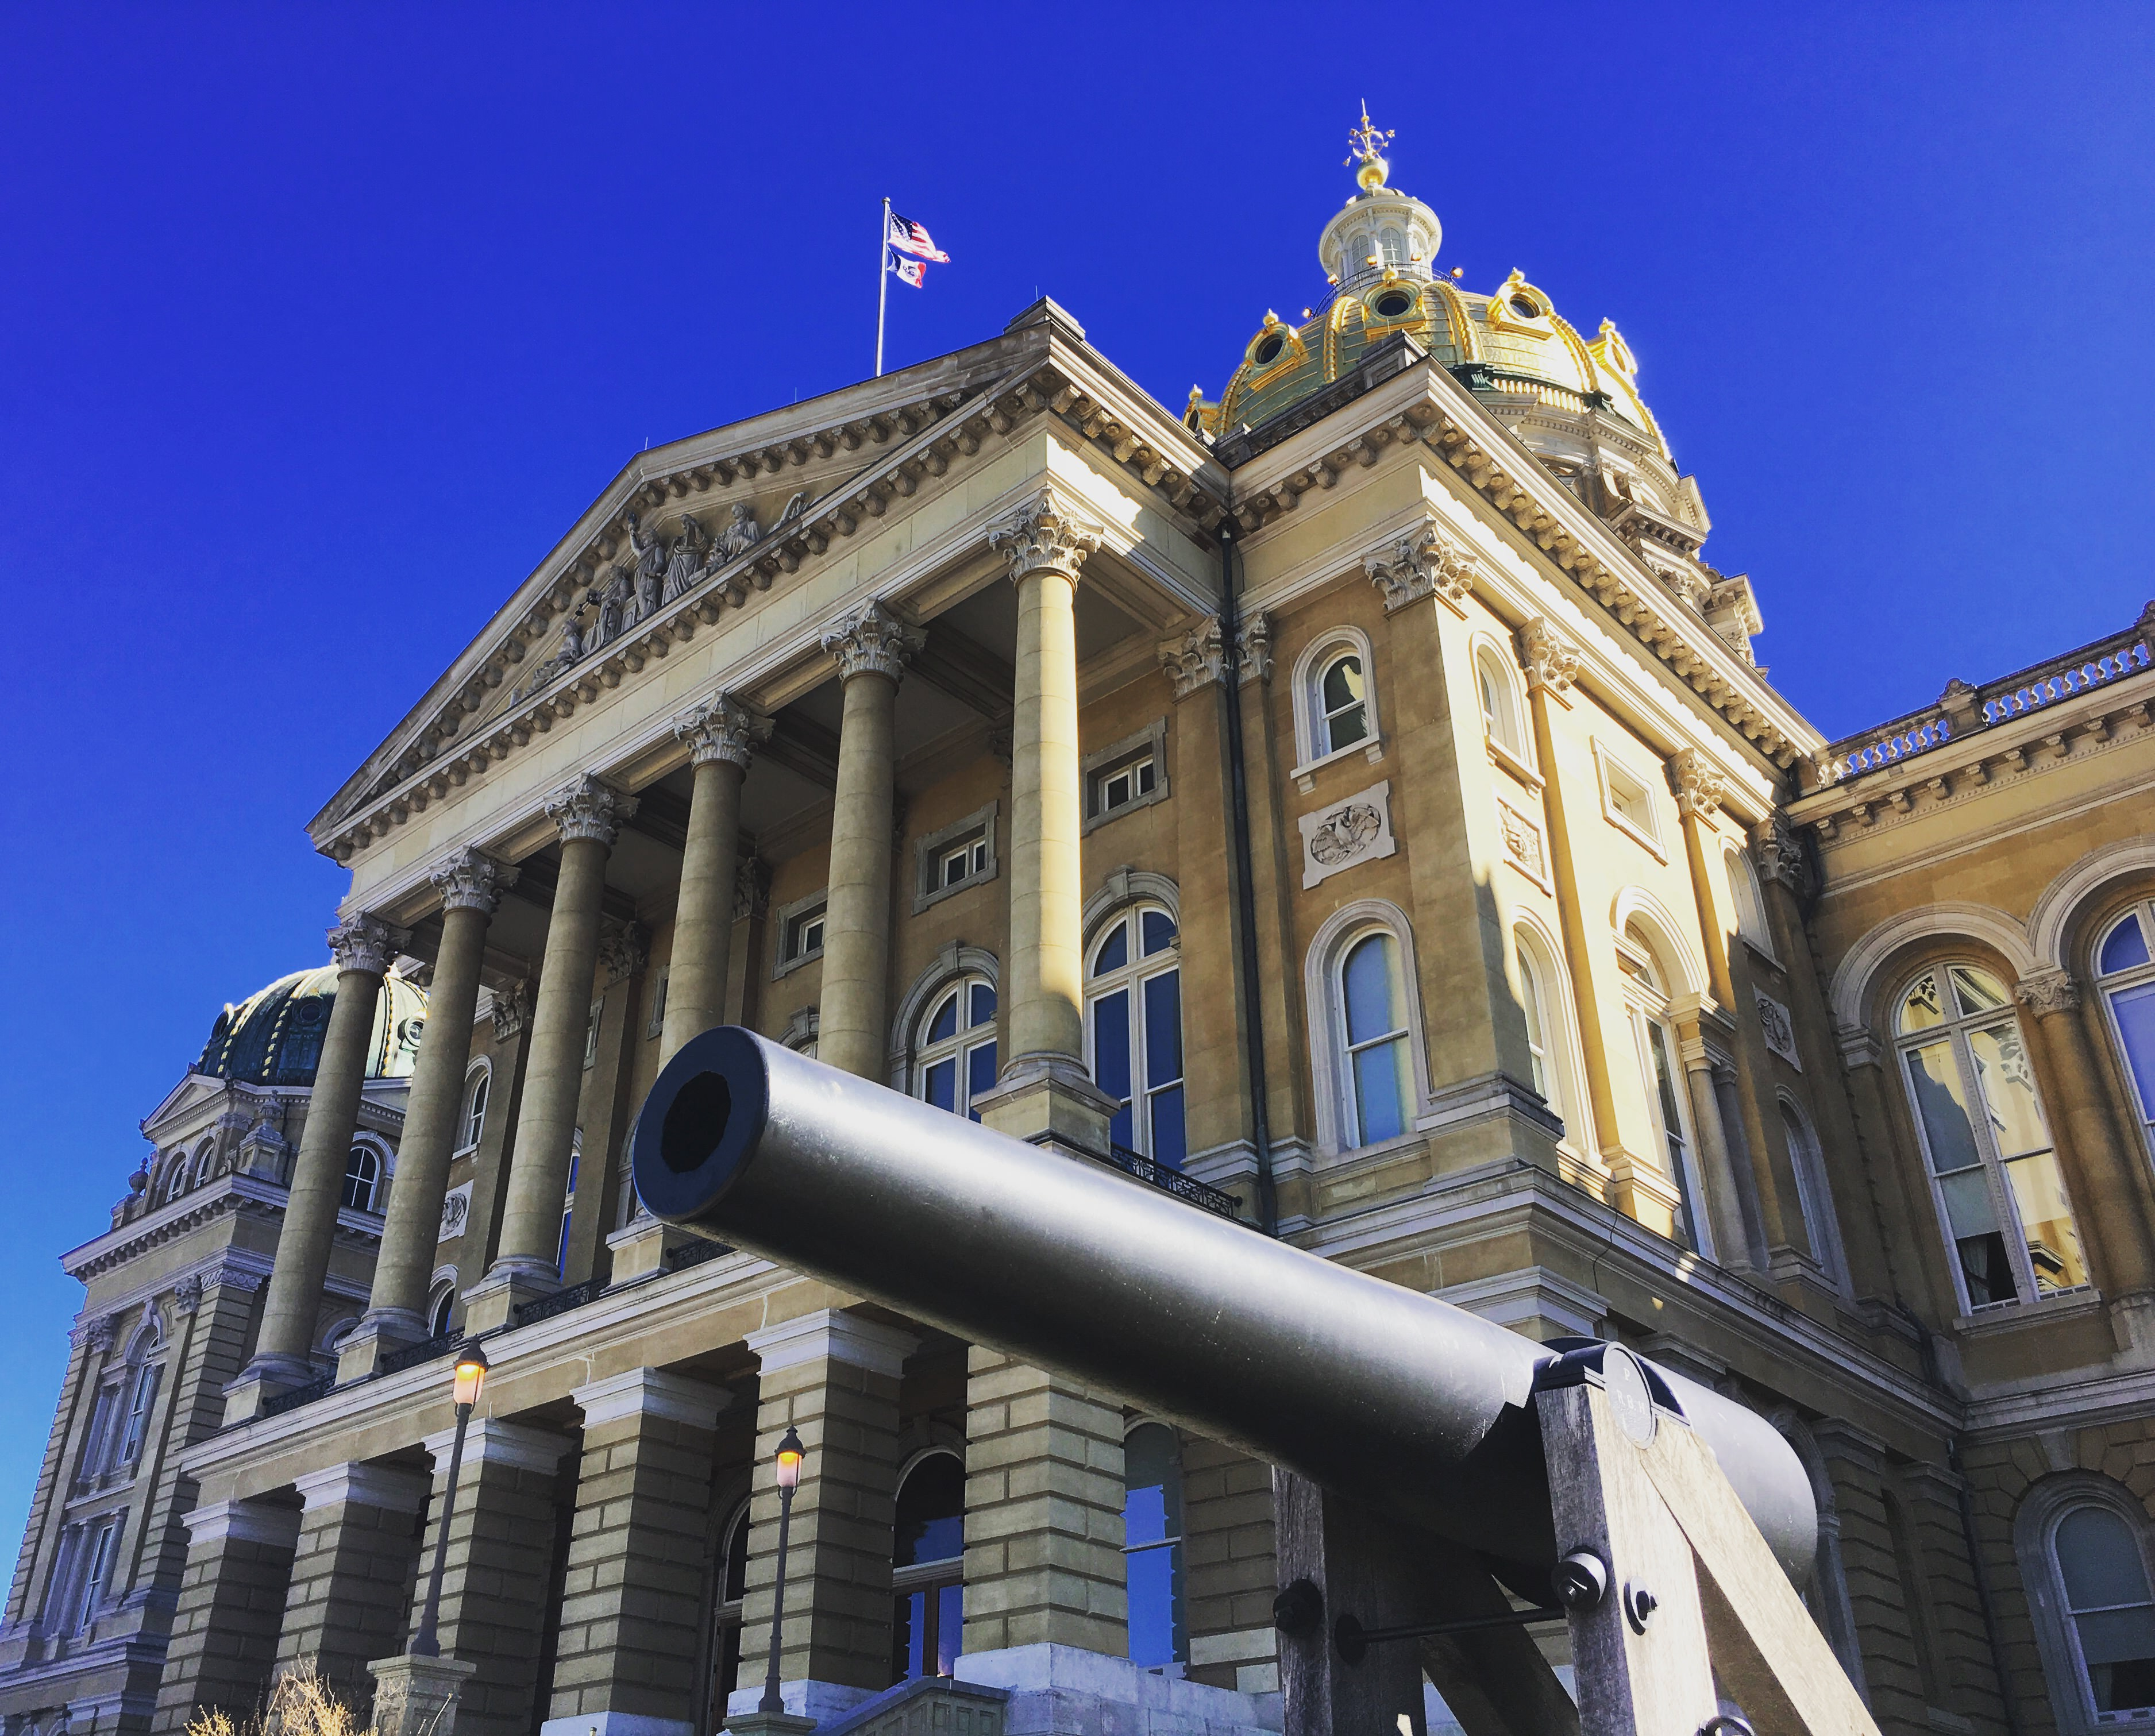 IOWA: SUPPRESSOR OWNERSHIP AND HUNTING NOW LEGAL